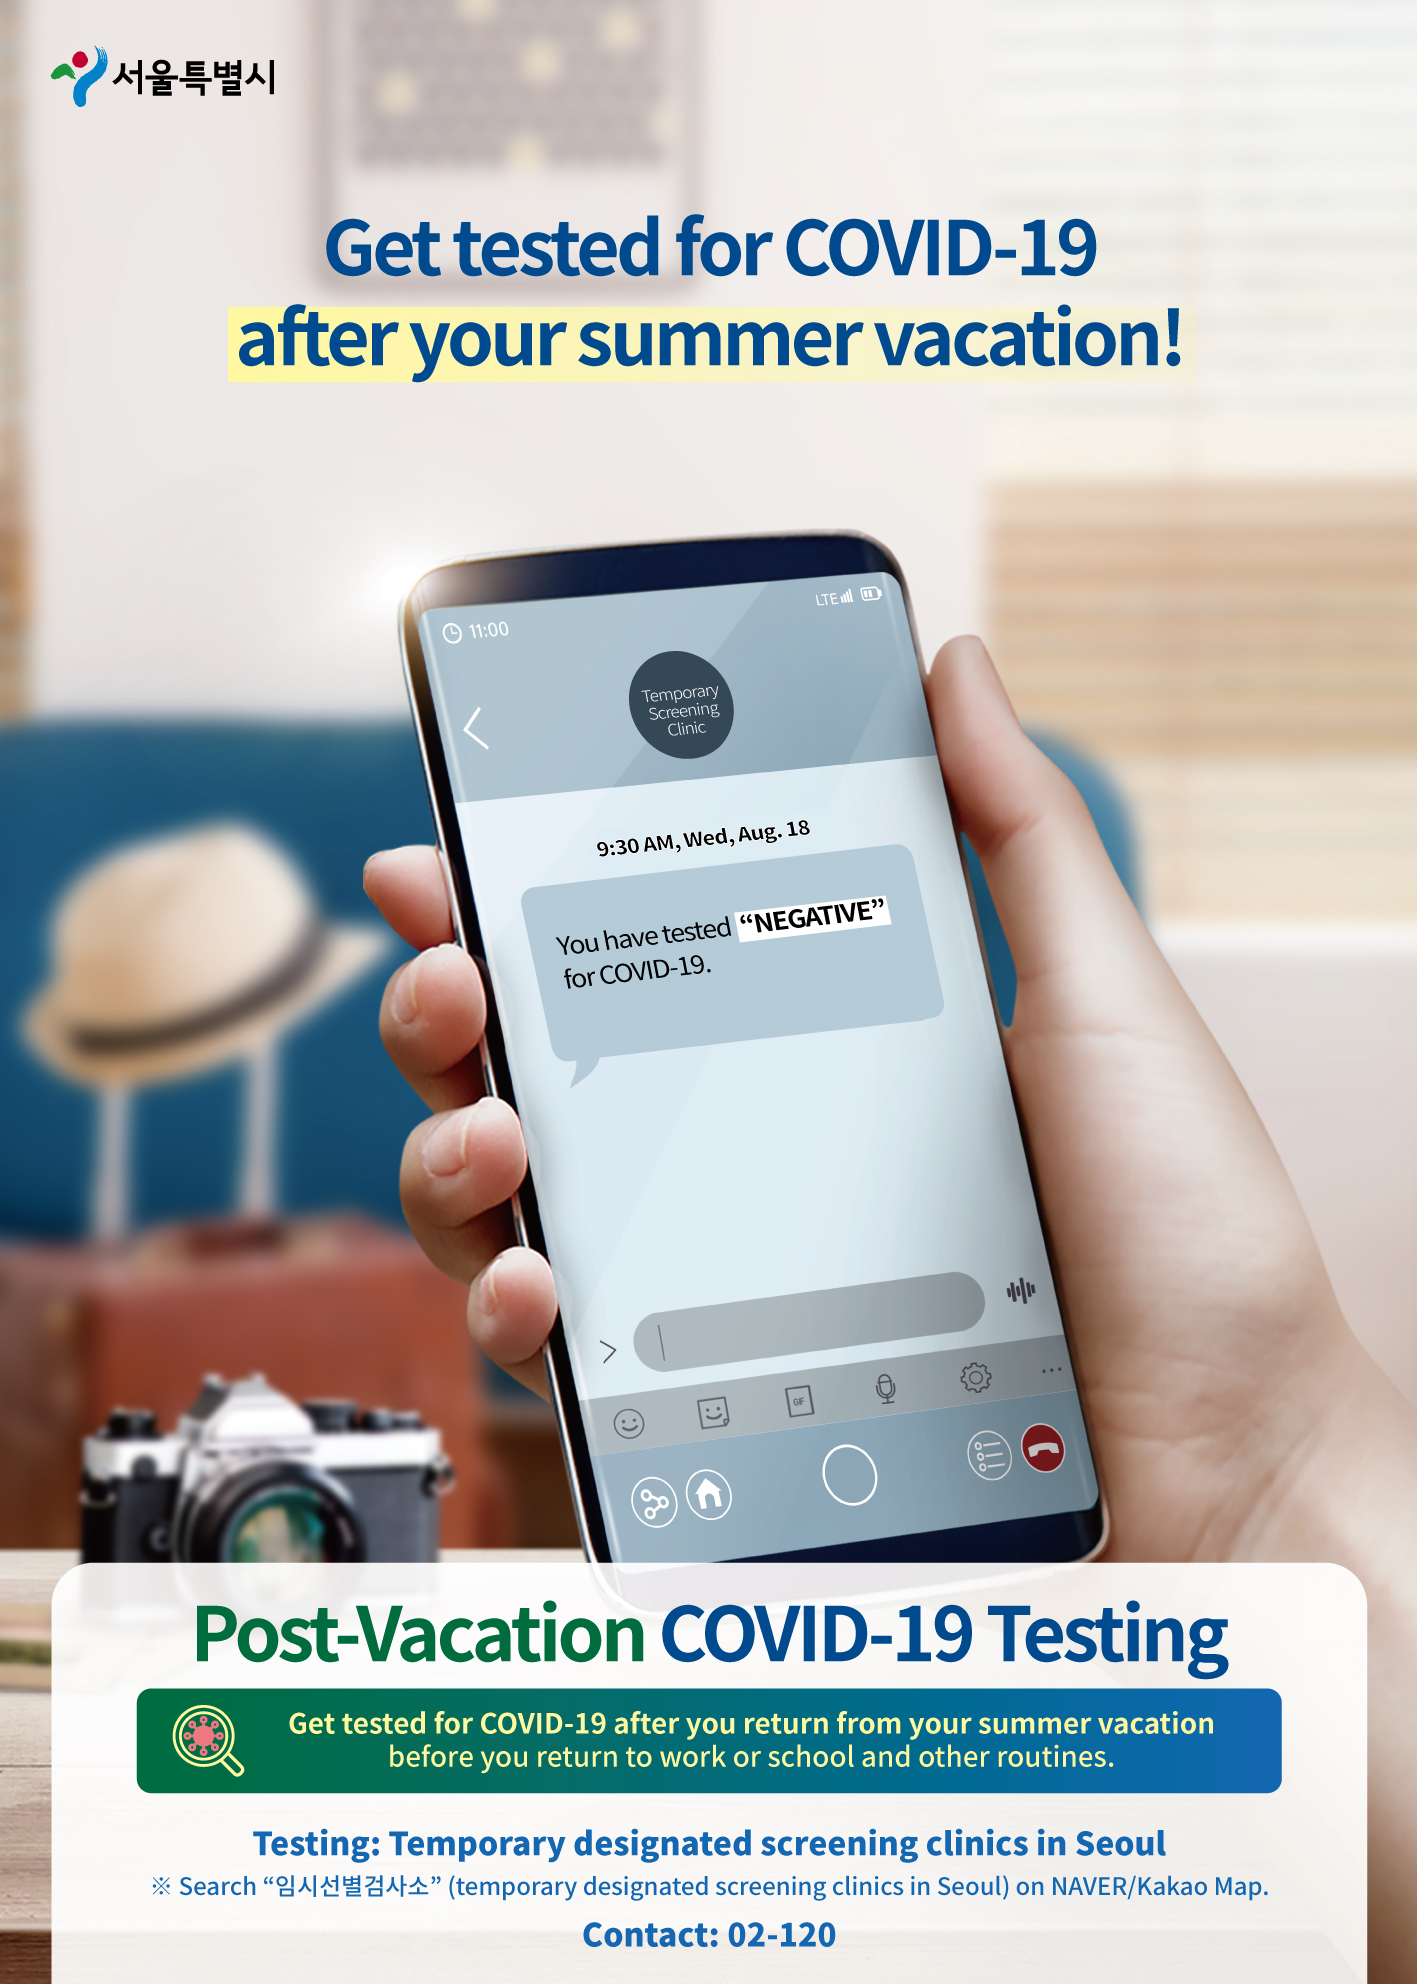 """Get tested for COVID-19 after your summer vacation!Screening Clinic9:30 AM, Wed, Aug. 18 The test result for your COVID-19 screening is """"Negative"""" (no detection).Post-Vacation COVID-19 TestingGet tested for COVID-19 after you return from your summer vacation before you return to work or school and other routines.Testing: Temporary designated screening clinics in Seoul※ Search """"임시선별검사소"""" (temporary designated screening clinics in Seoul) on NAVER/Kakao Map. Contact: 02-120"""